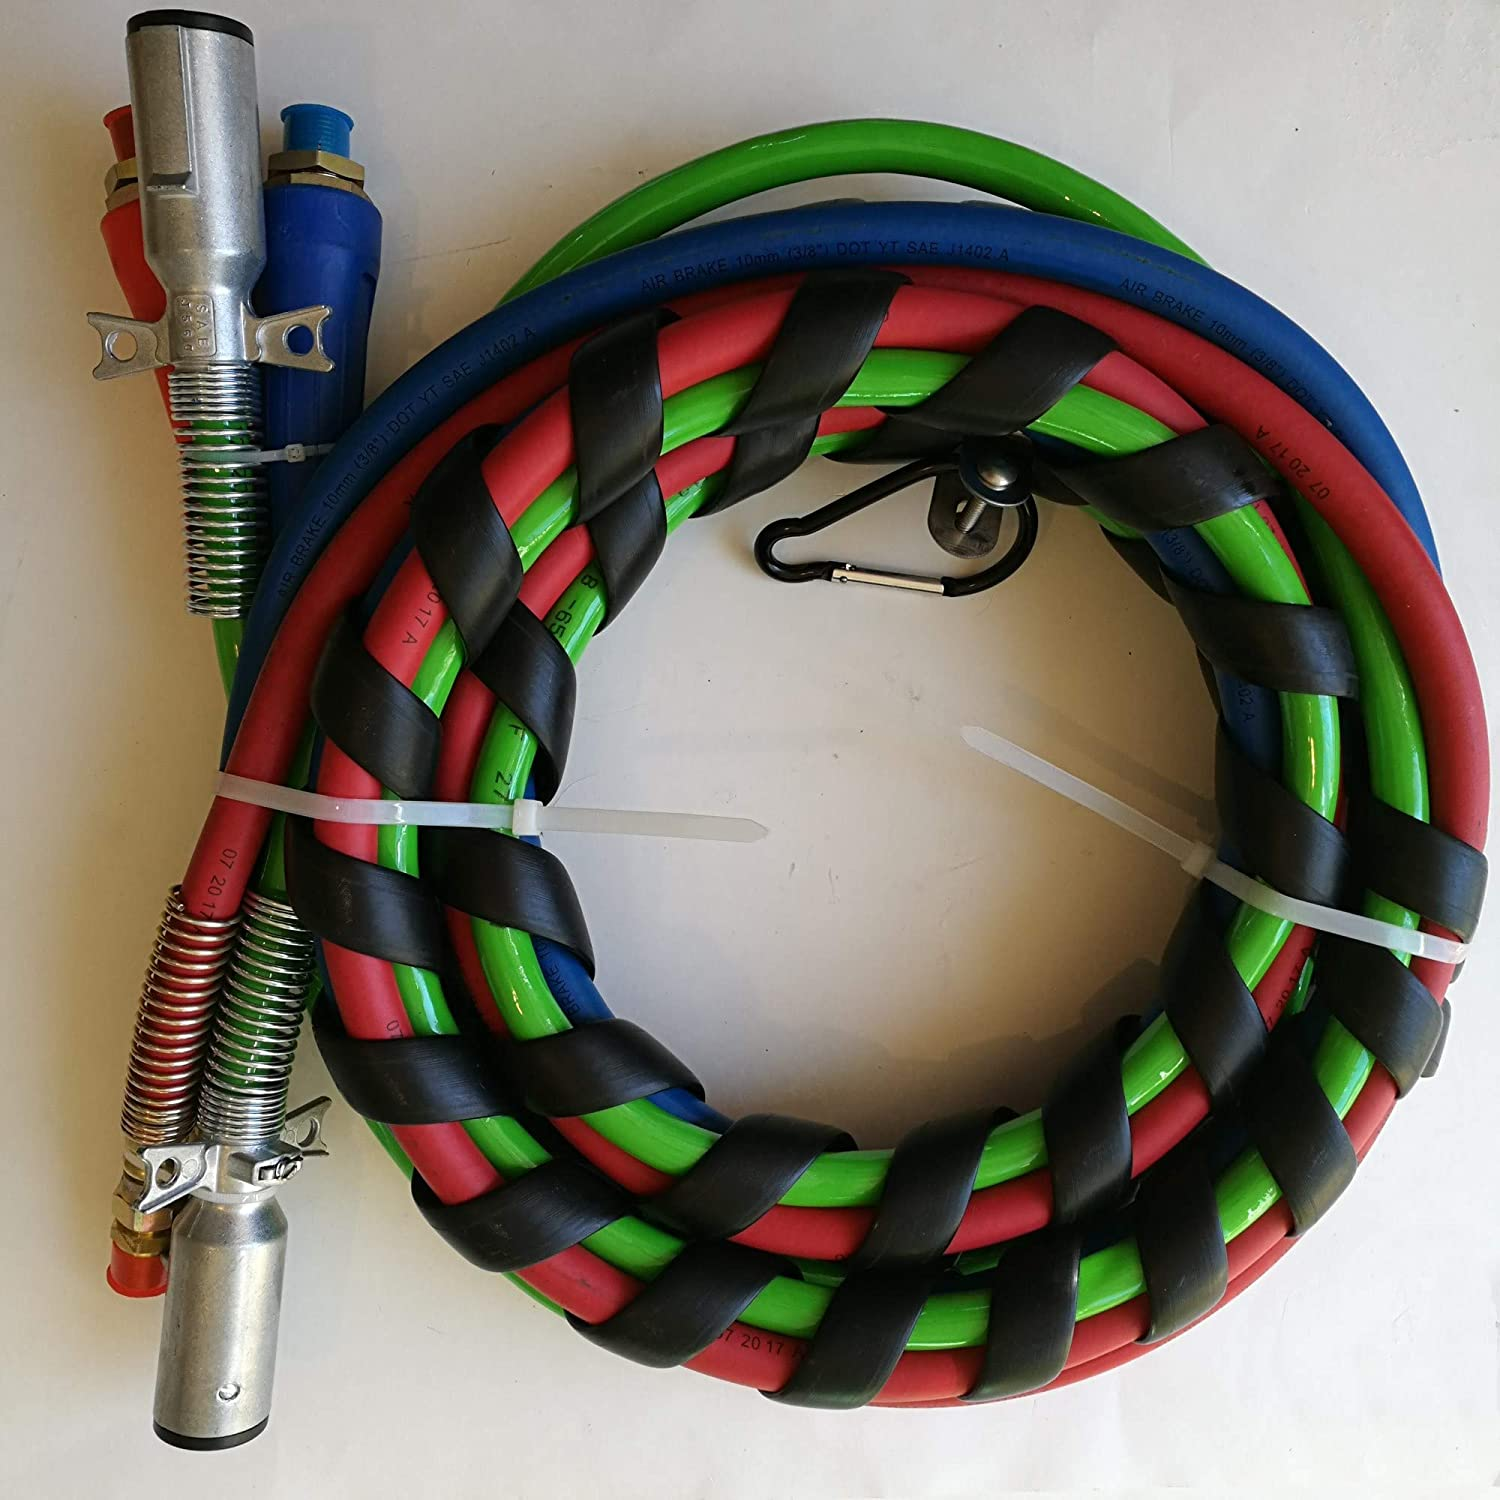 RED /& BLUE Air Hoses 15 ft 3-in-1 ABS Electrical /& Air Hose Assemblies